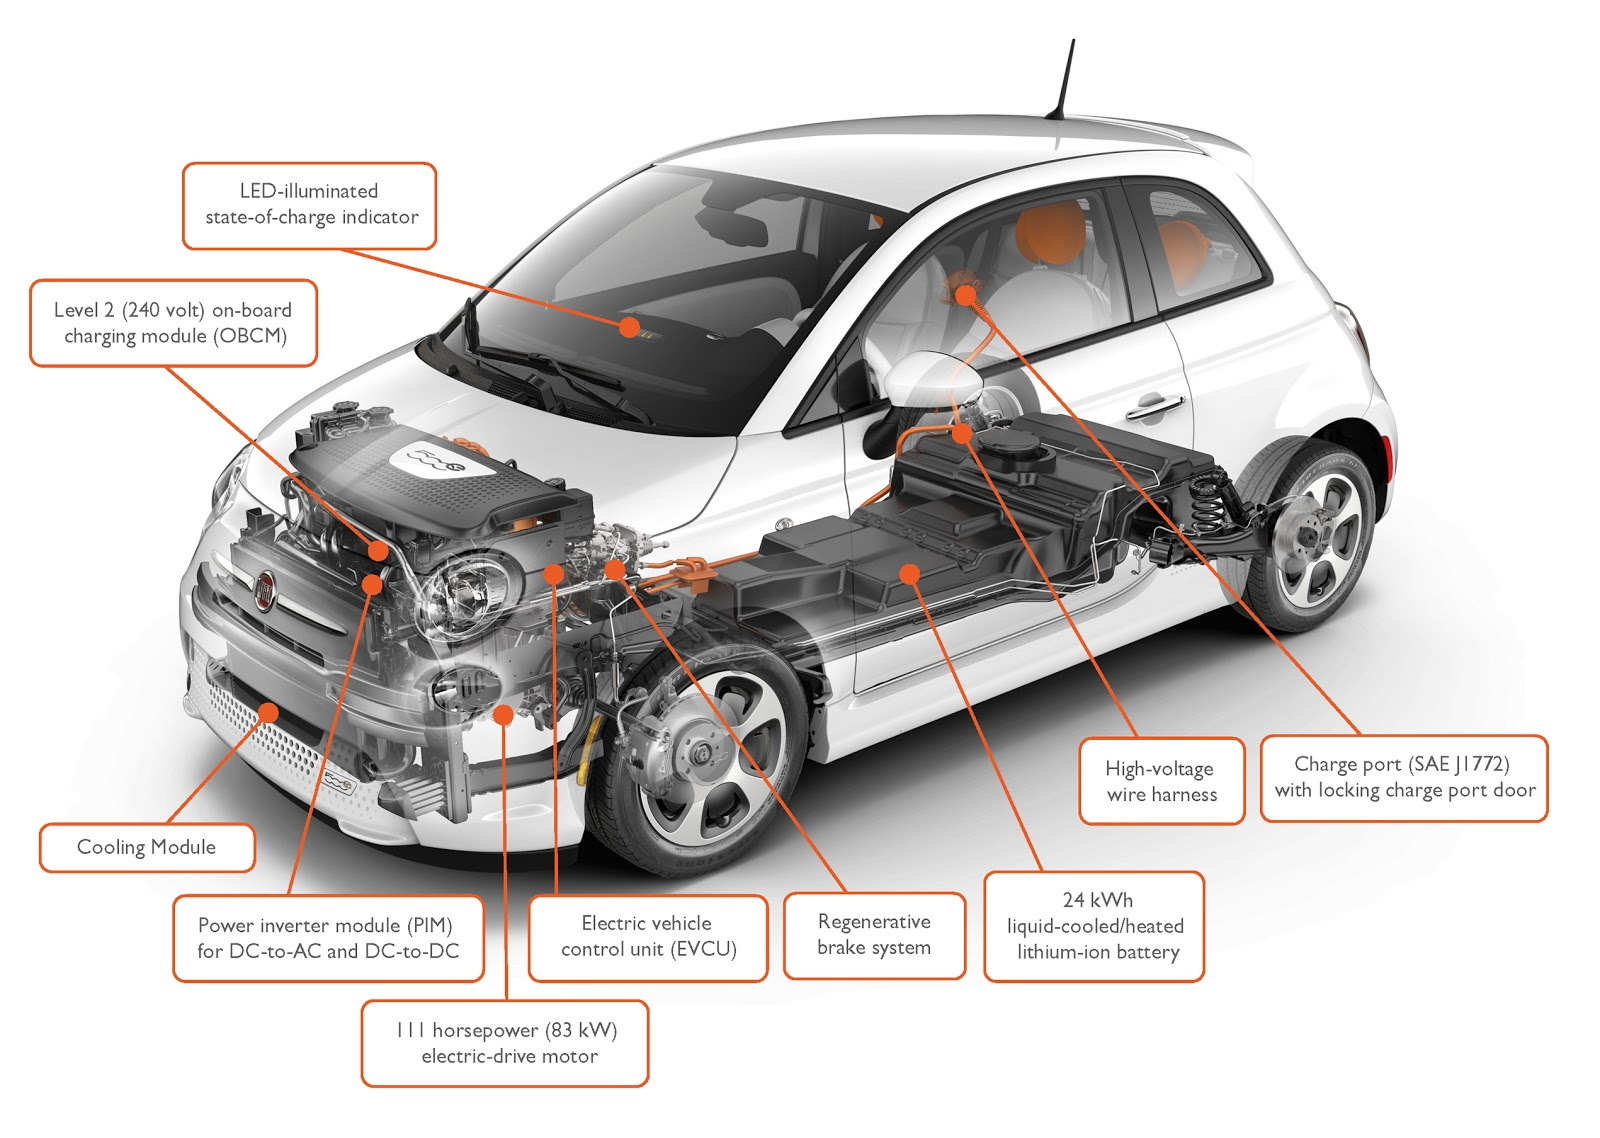 Fiat 500e specs+(6) fiat 500e full vehicle specifications! fiat 500 usa 2015 fiat 500 fuse box at reclaimingppi.co